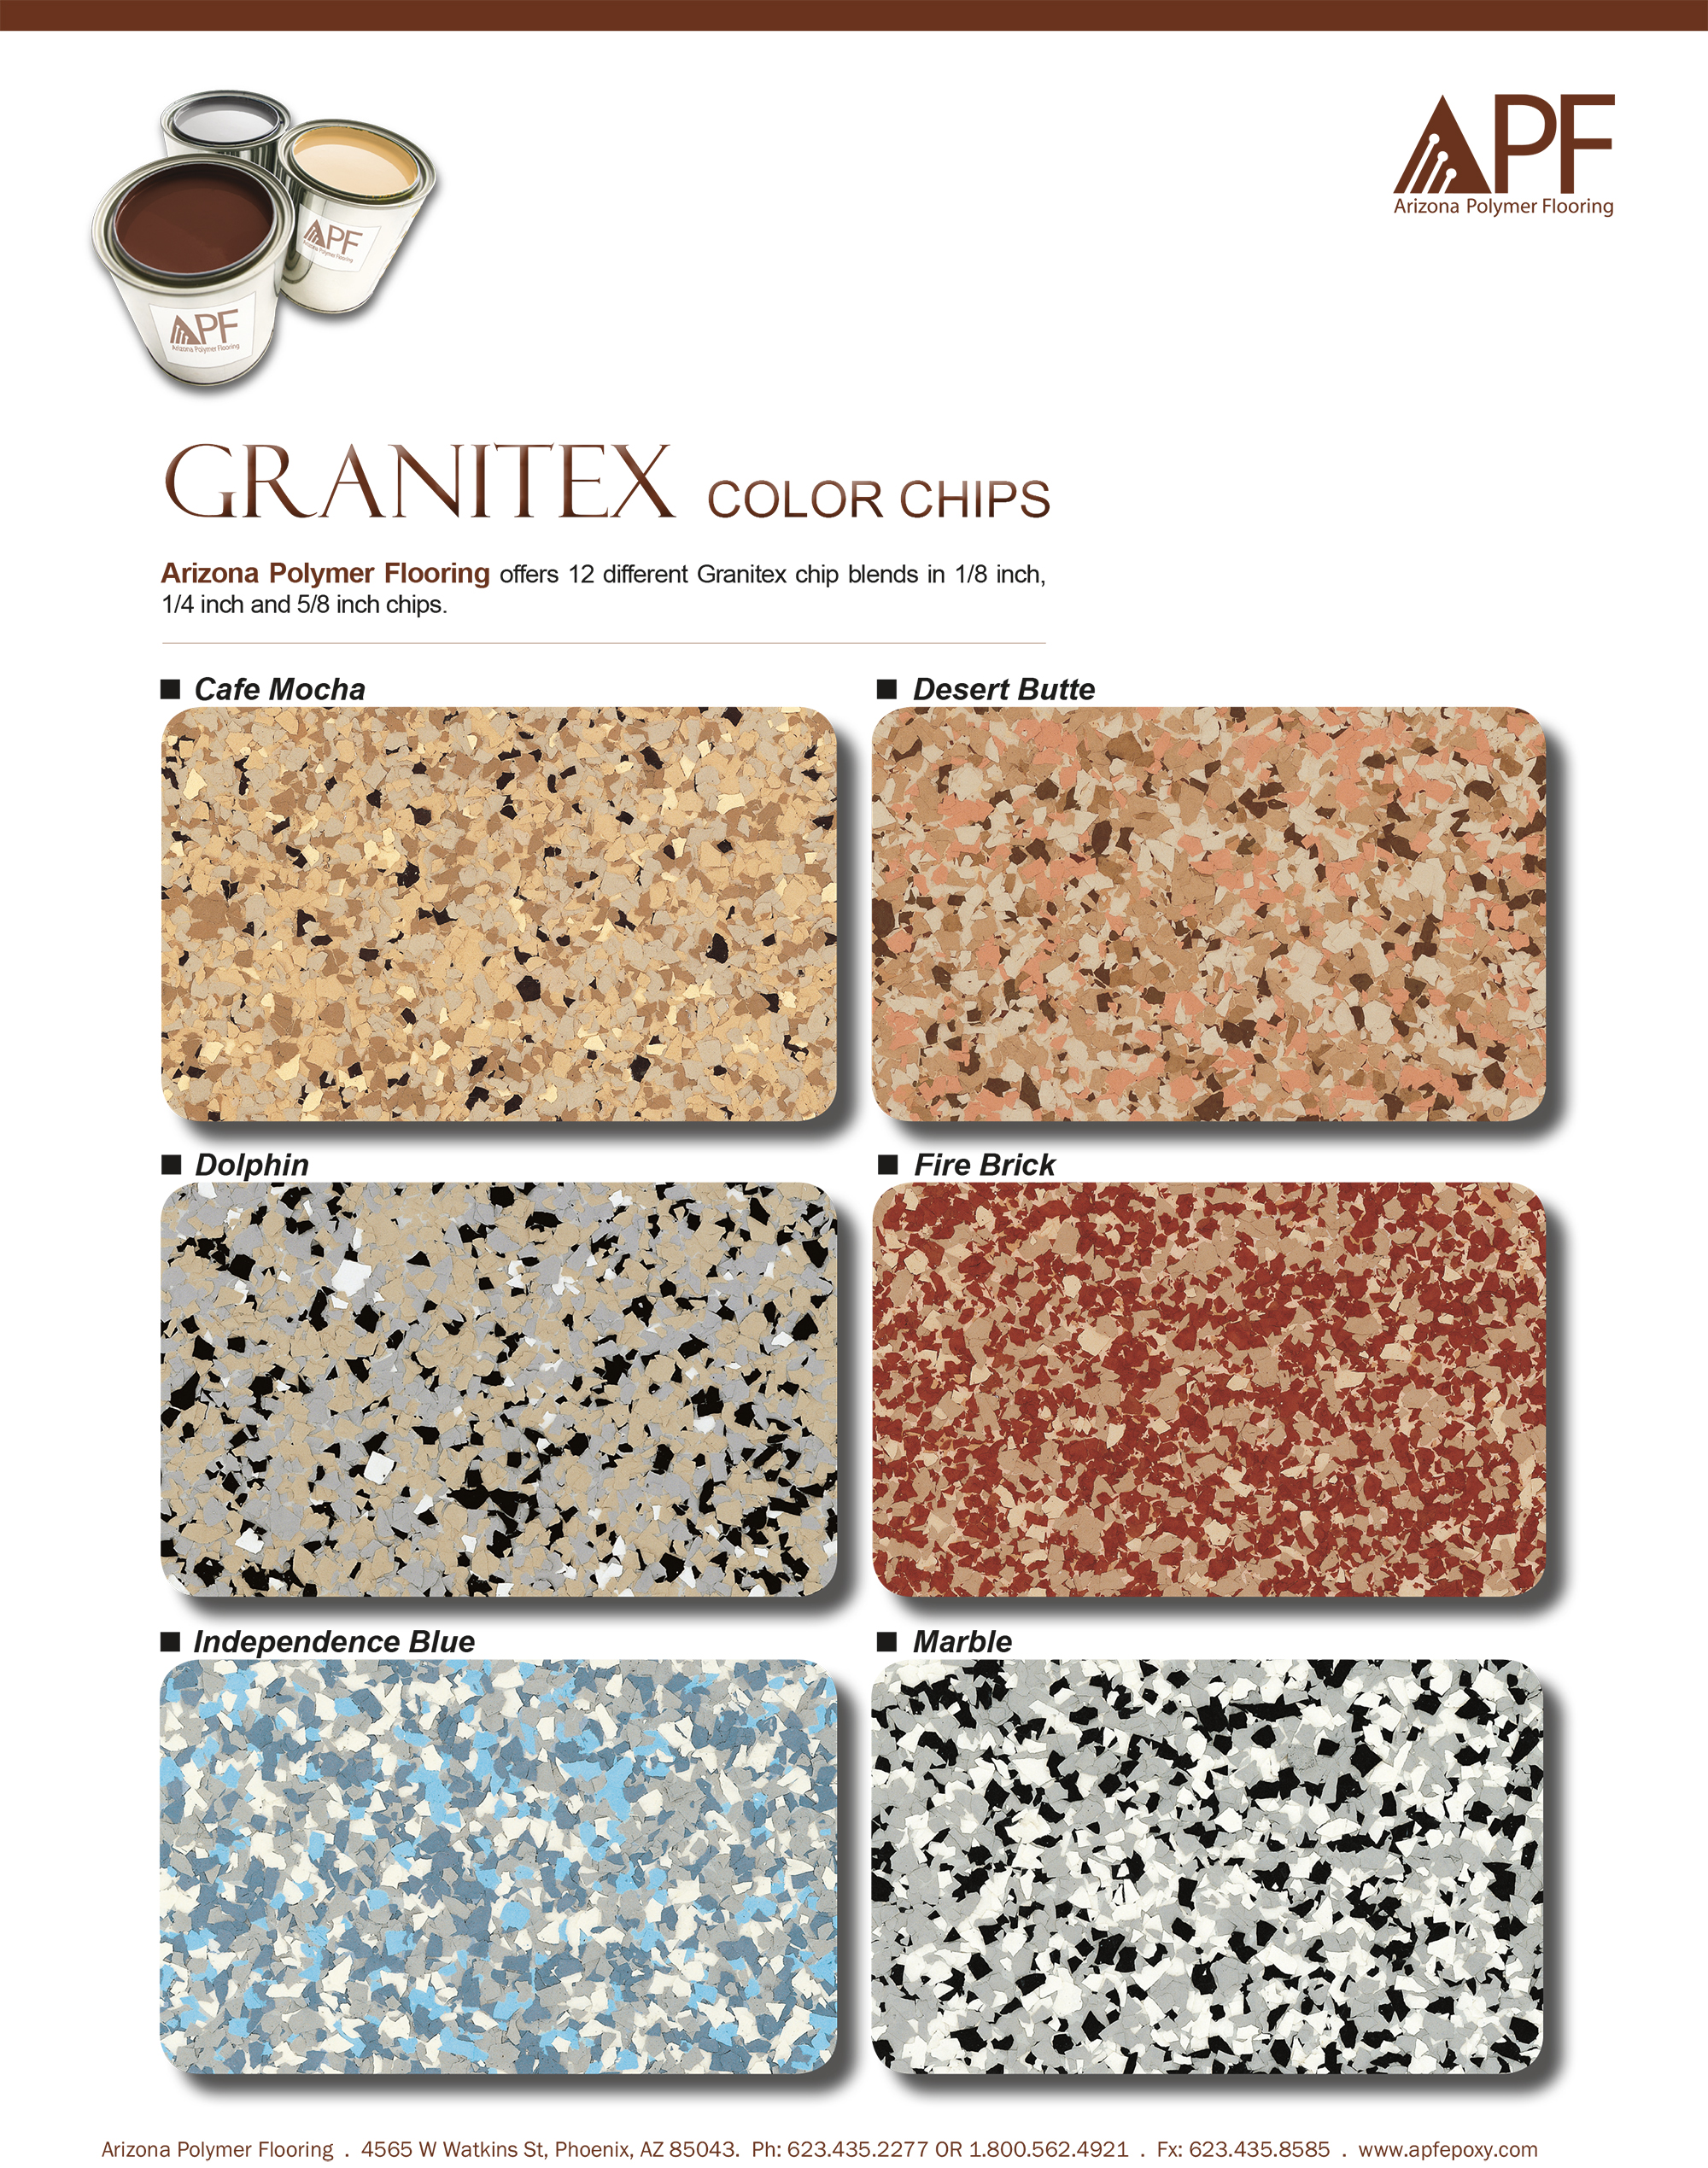 apf-granitex-chips